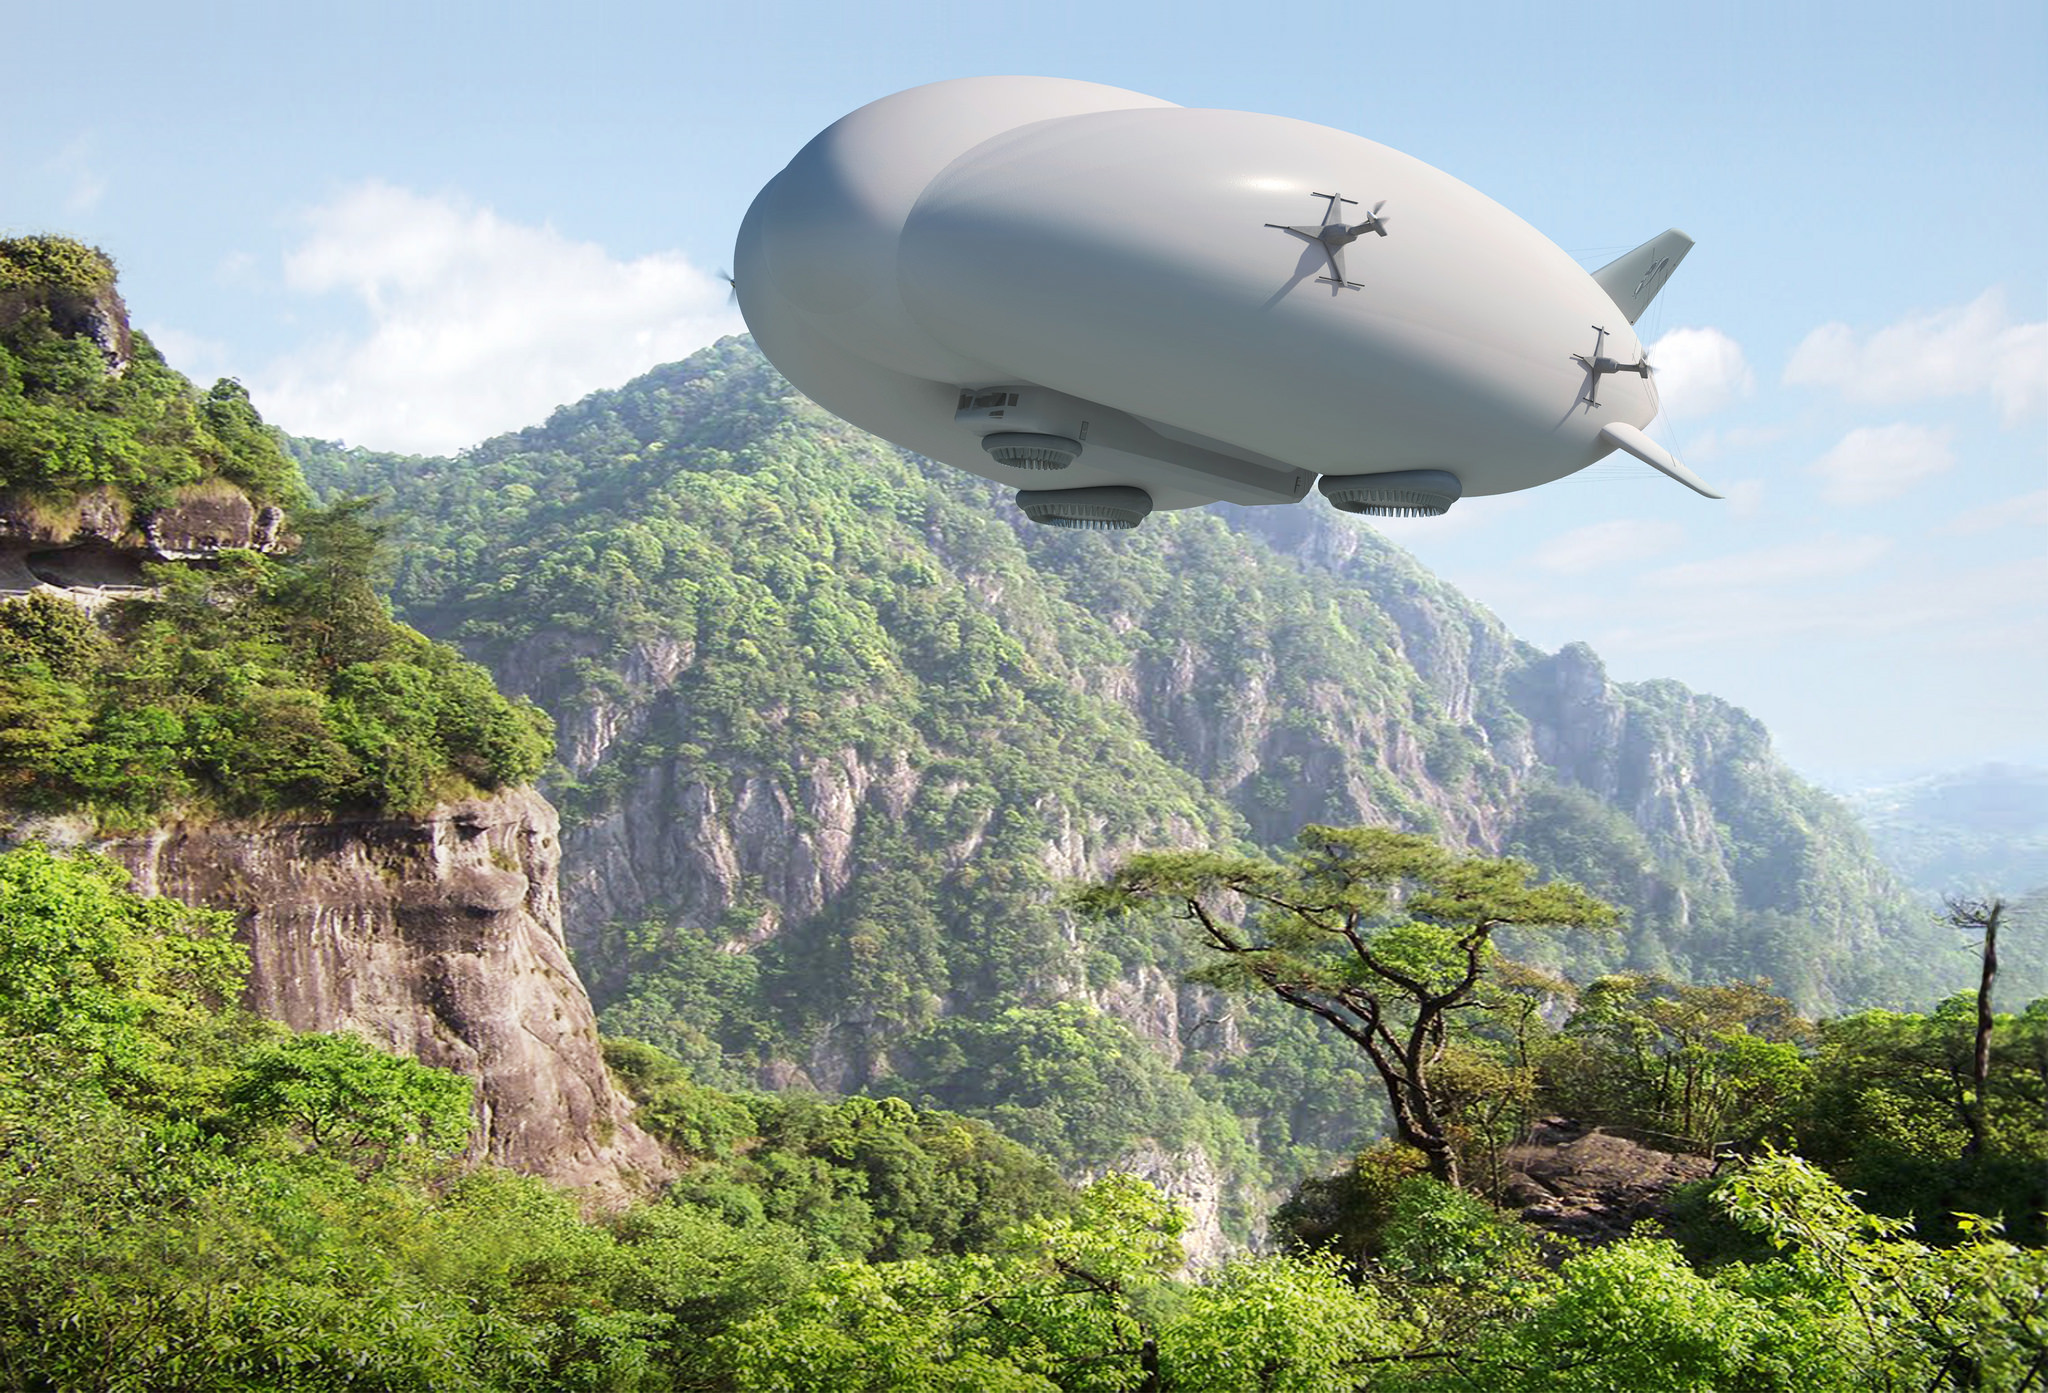 No roads, no problem. This artist rendering depicts the operational 20 ton Hybrid Airship in a remote area. The Hybrid Airship can deliver heavy cargo and personnel to virtually anywhere – water or land, in normal flying weather conditions – with little to no infrastructure.